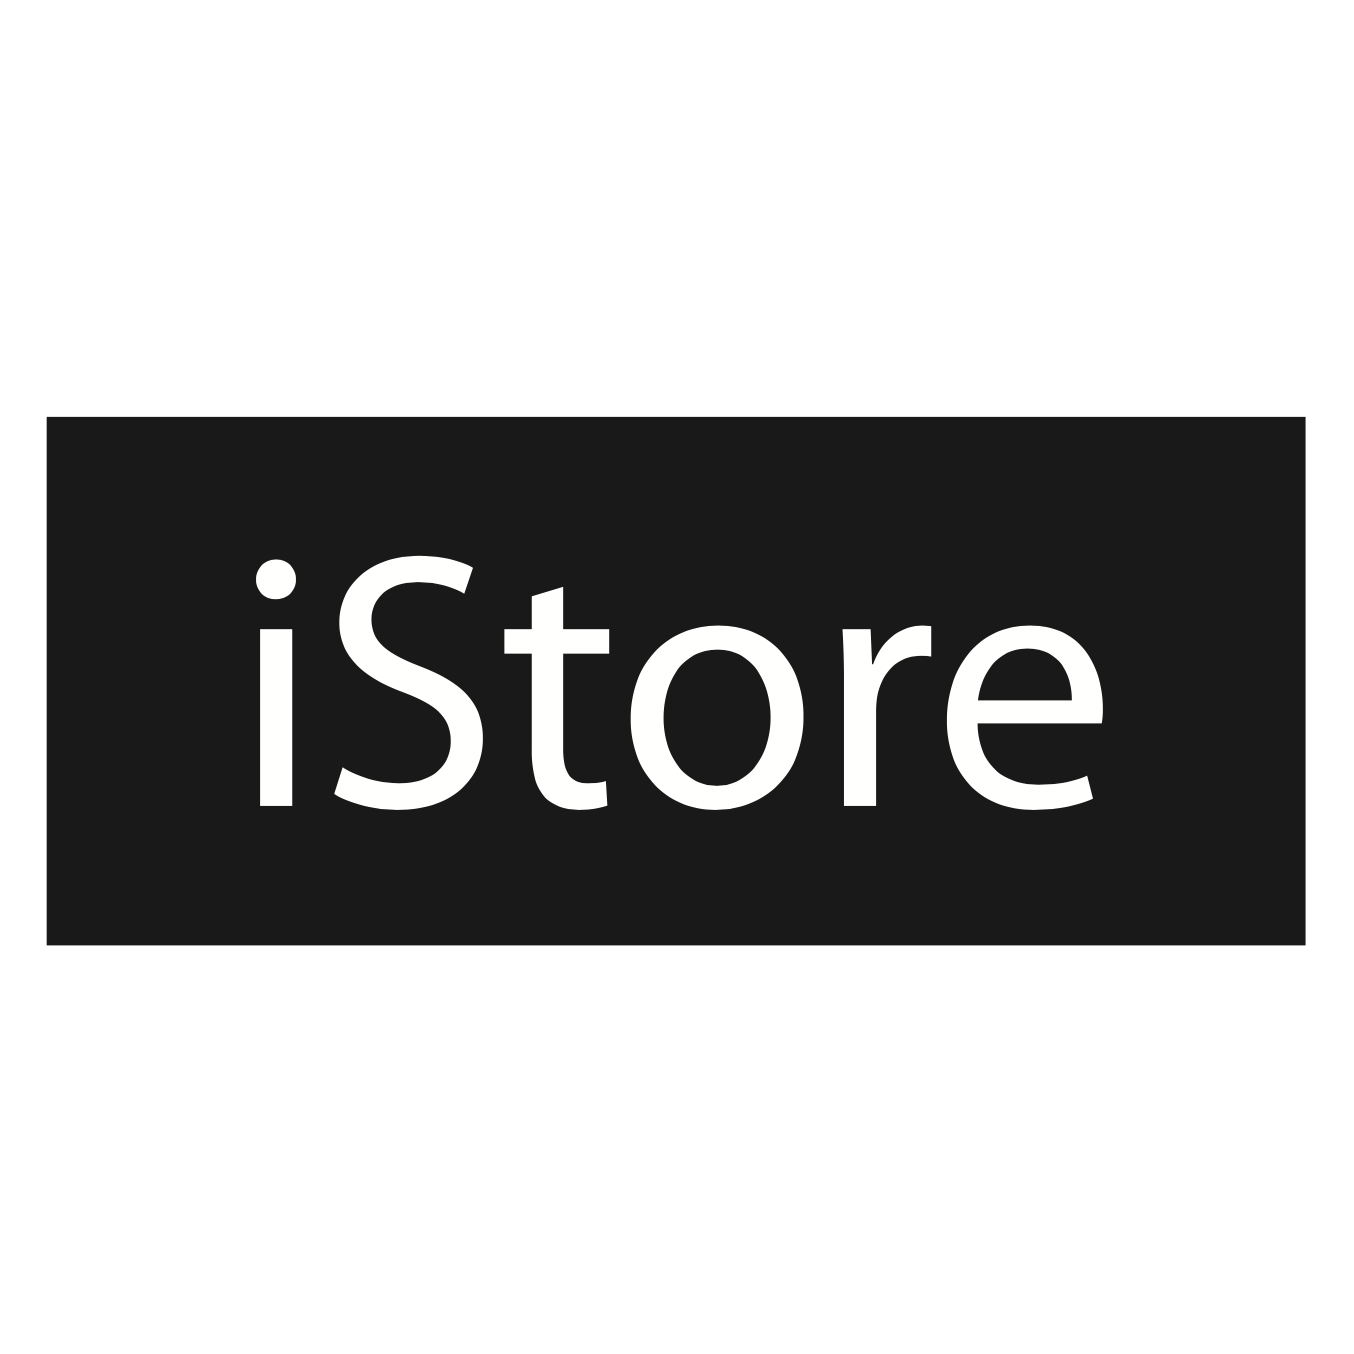 Booking a technical appointment at iStore.